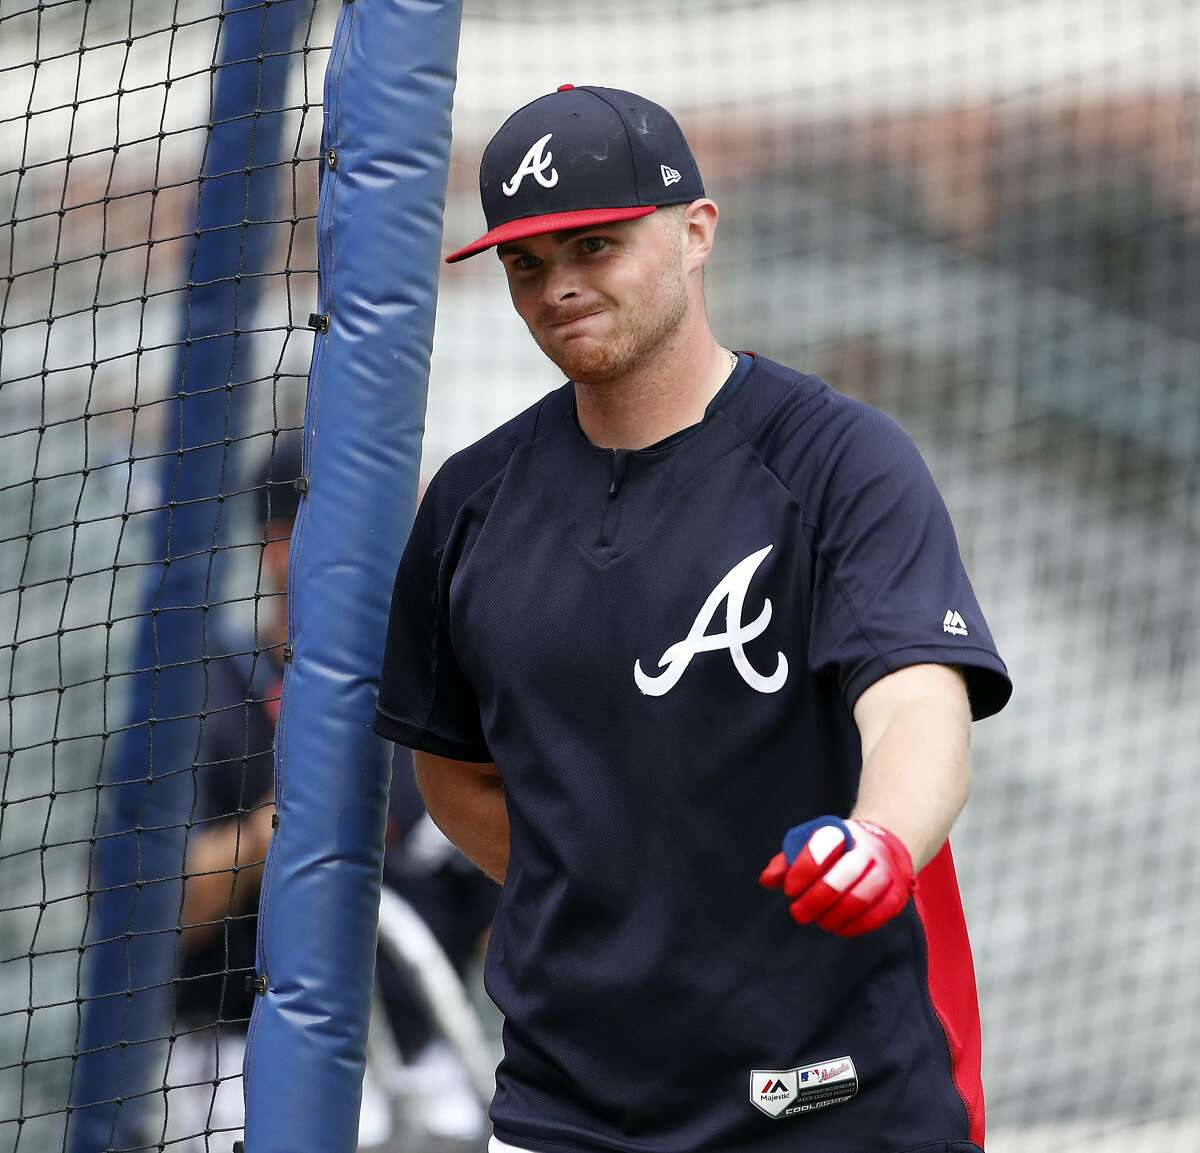 Atlanta Braves starting pitcher Sean Newcomb (15) is shown during batting practice before of a baseball game against the Miami Marlins Monday, July 30, 2018 in Atlanta. Newcomb apologized Sunday for racist, homophobic and sexist tweets he sent as a teenager, calling them